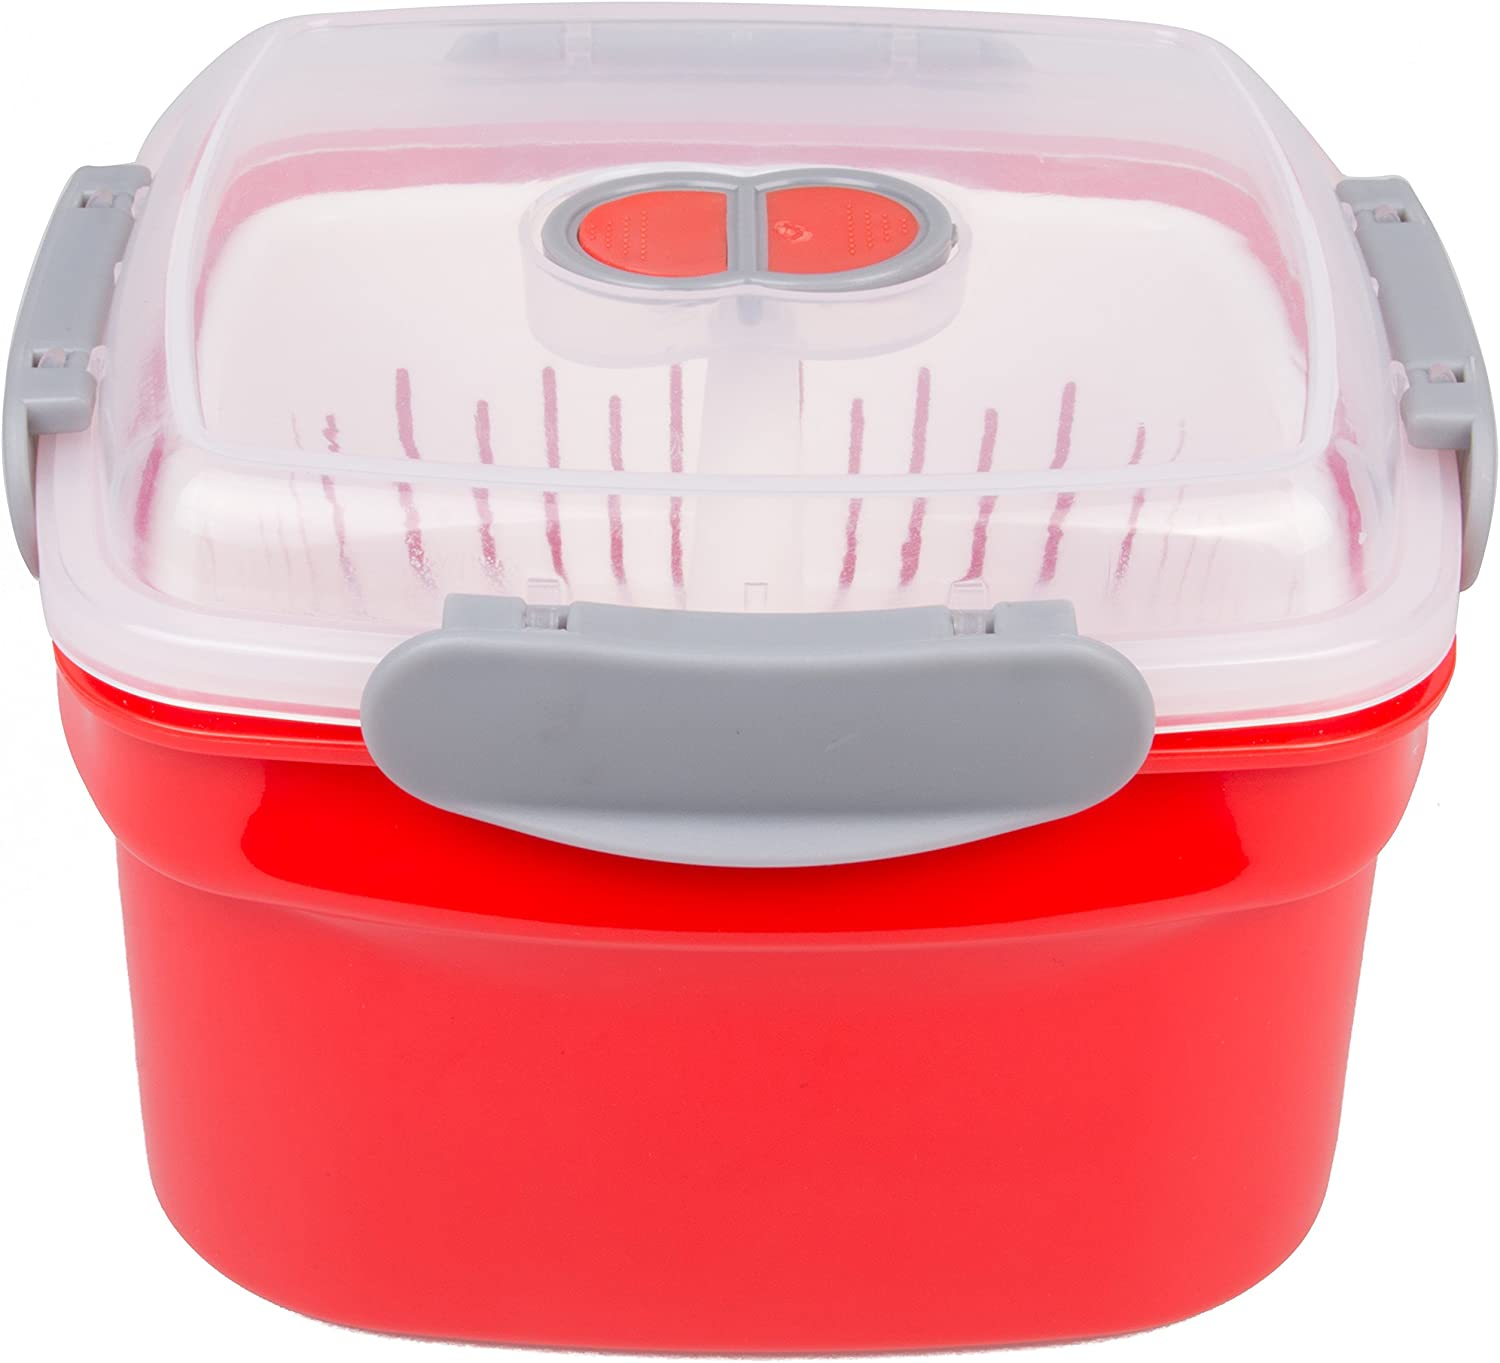 Microwave Cookware Steamer- 3 Piece Microwave Cooker w Food Container, Removable Strainer and Locking Steam Vent Lid- BPA Free, Fridge and Freezer Safe | 1.3 Liters, 6x6x4 Inches